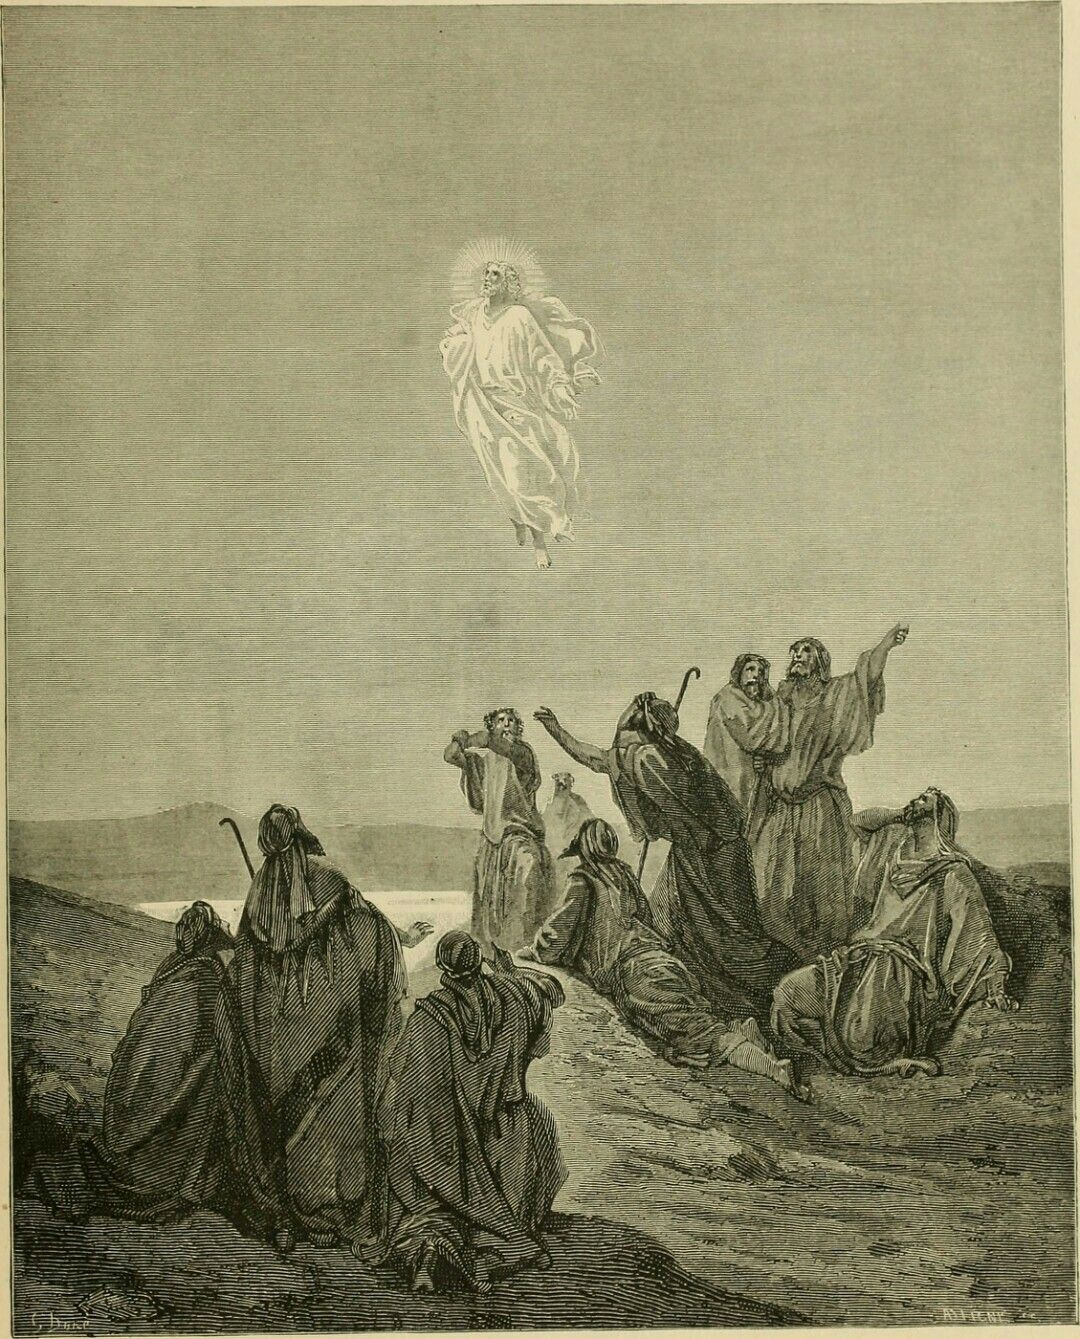 Phillip Medhurst presents William A. Foster's Bible Panorama 132/140 : JESUS ASCENDS INTO HEAVEN. Luke XXI. 51. After Gustave Doré.